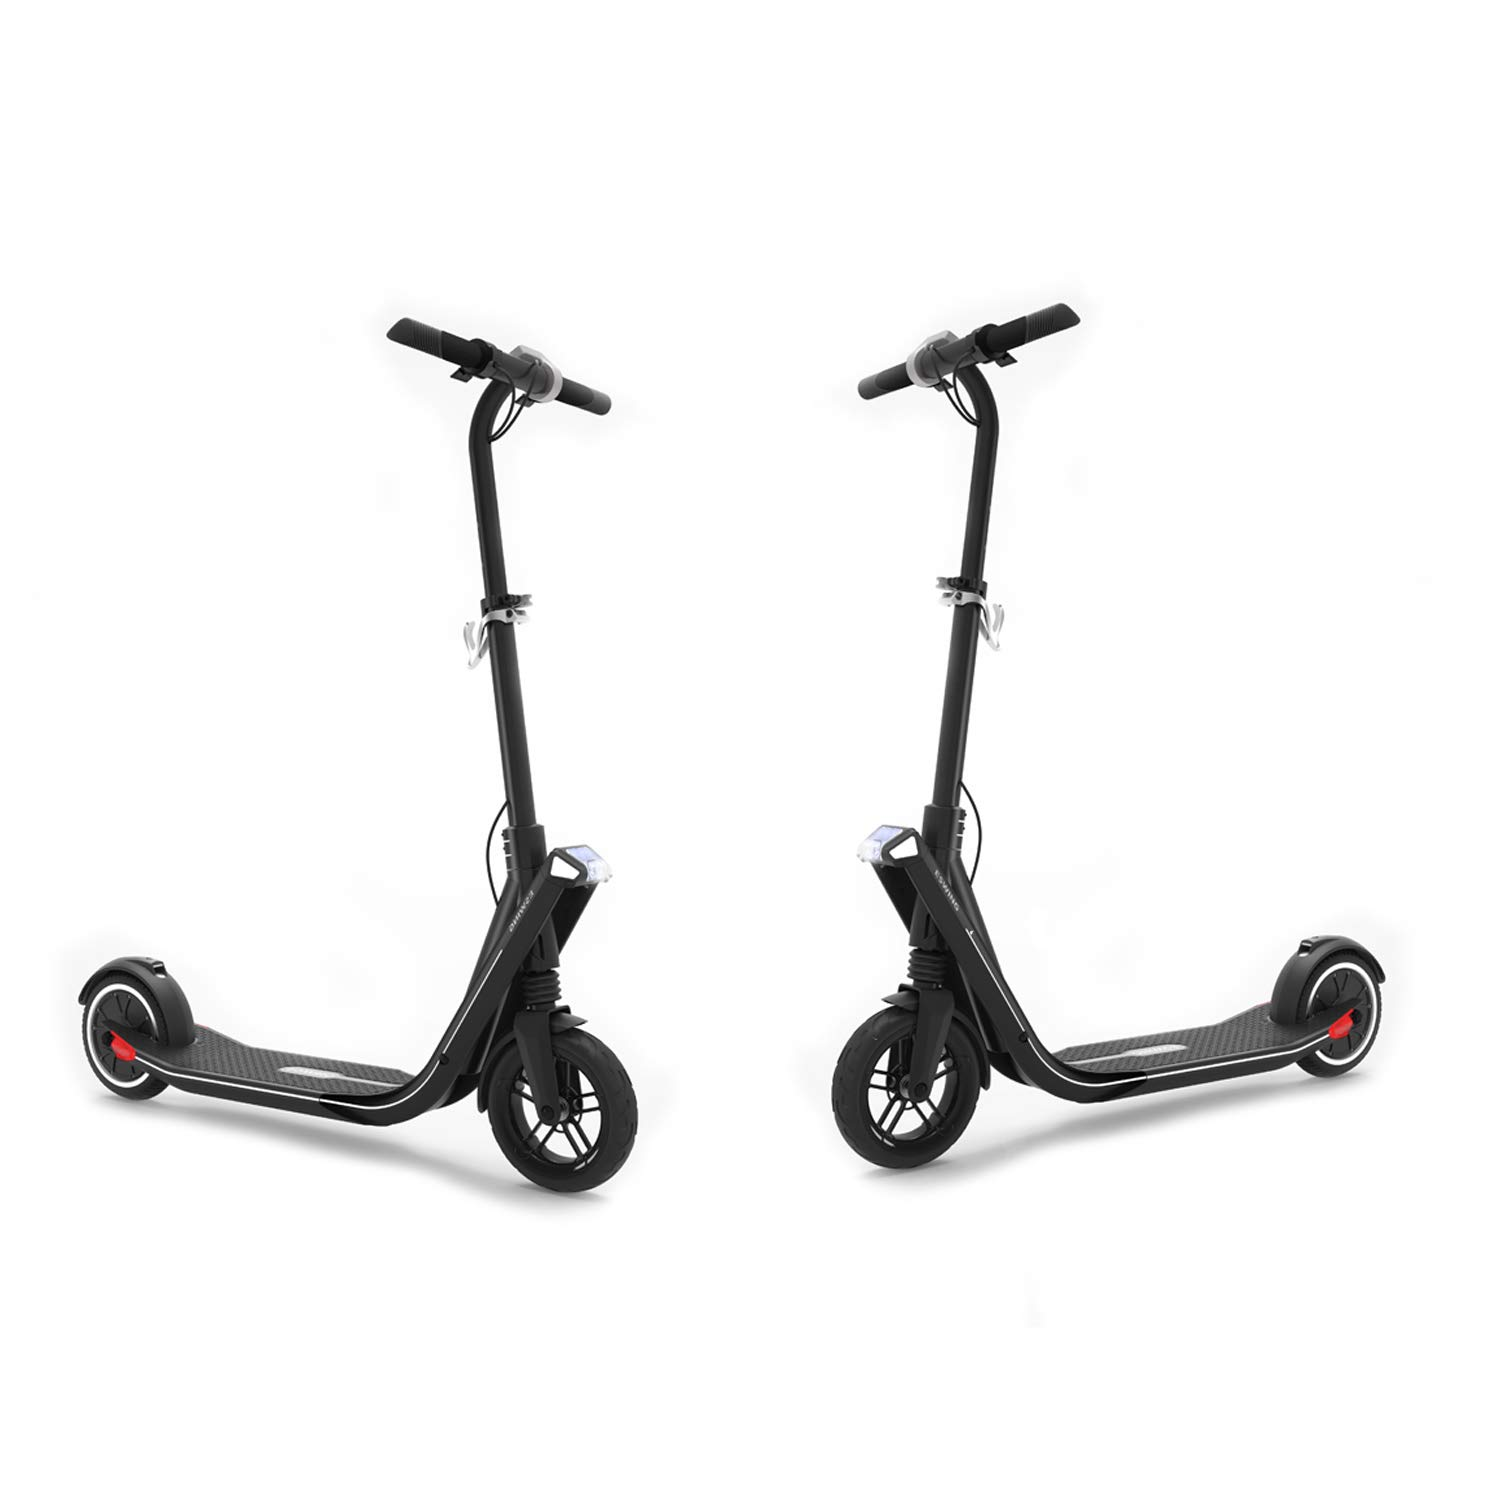 Amazon.com: ESWING Kick Scooter - Patinete eléctrico, 12,4 ...